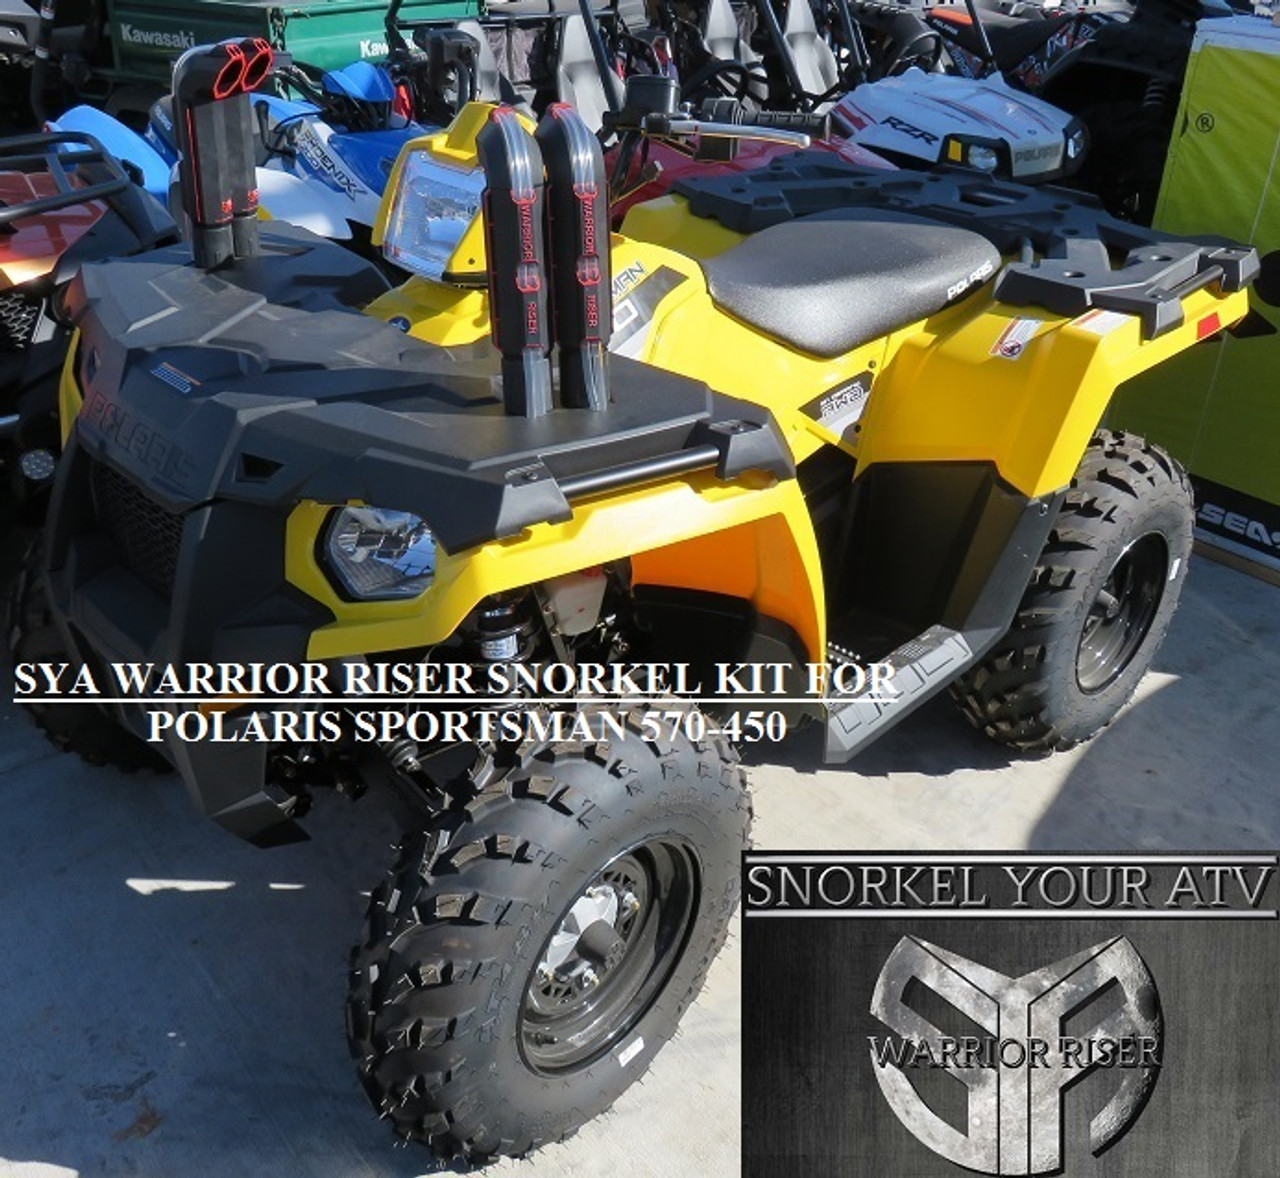 Sya warrior riser snorkel kit for polaris sportsman 570 450 14 16 sya warrior riser snorkel kit for polaris sportsman 570 450 14 16 publicscrutiny